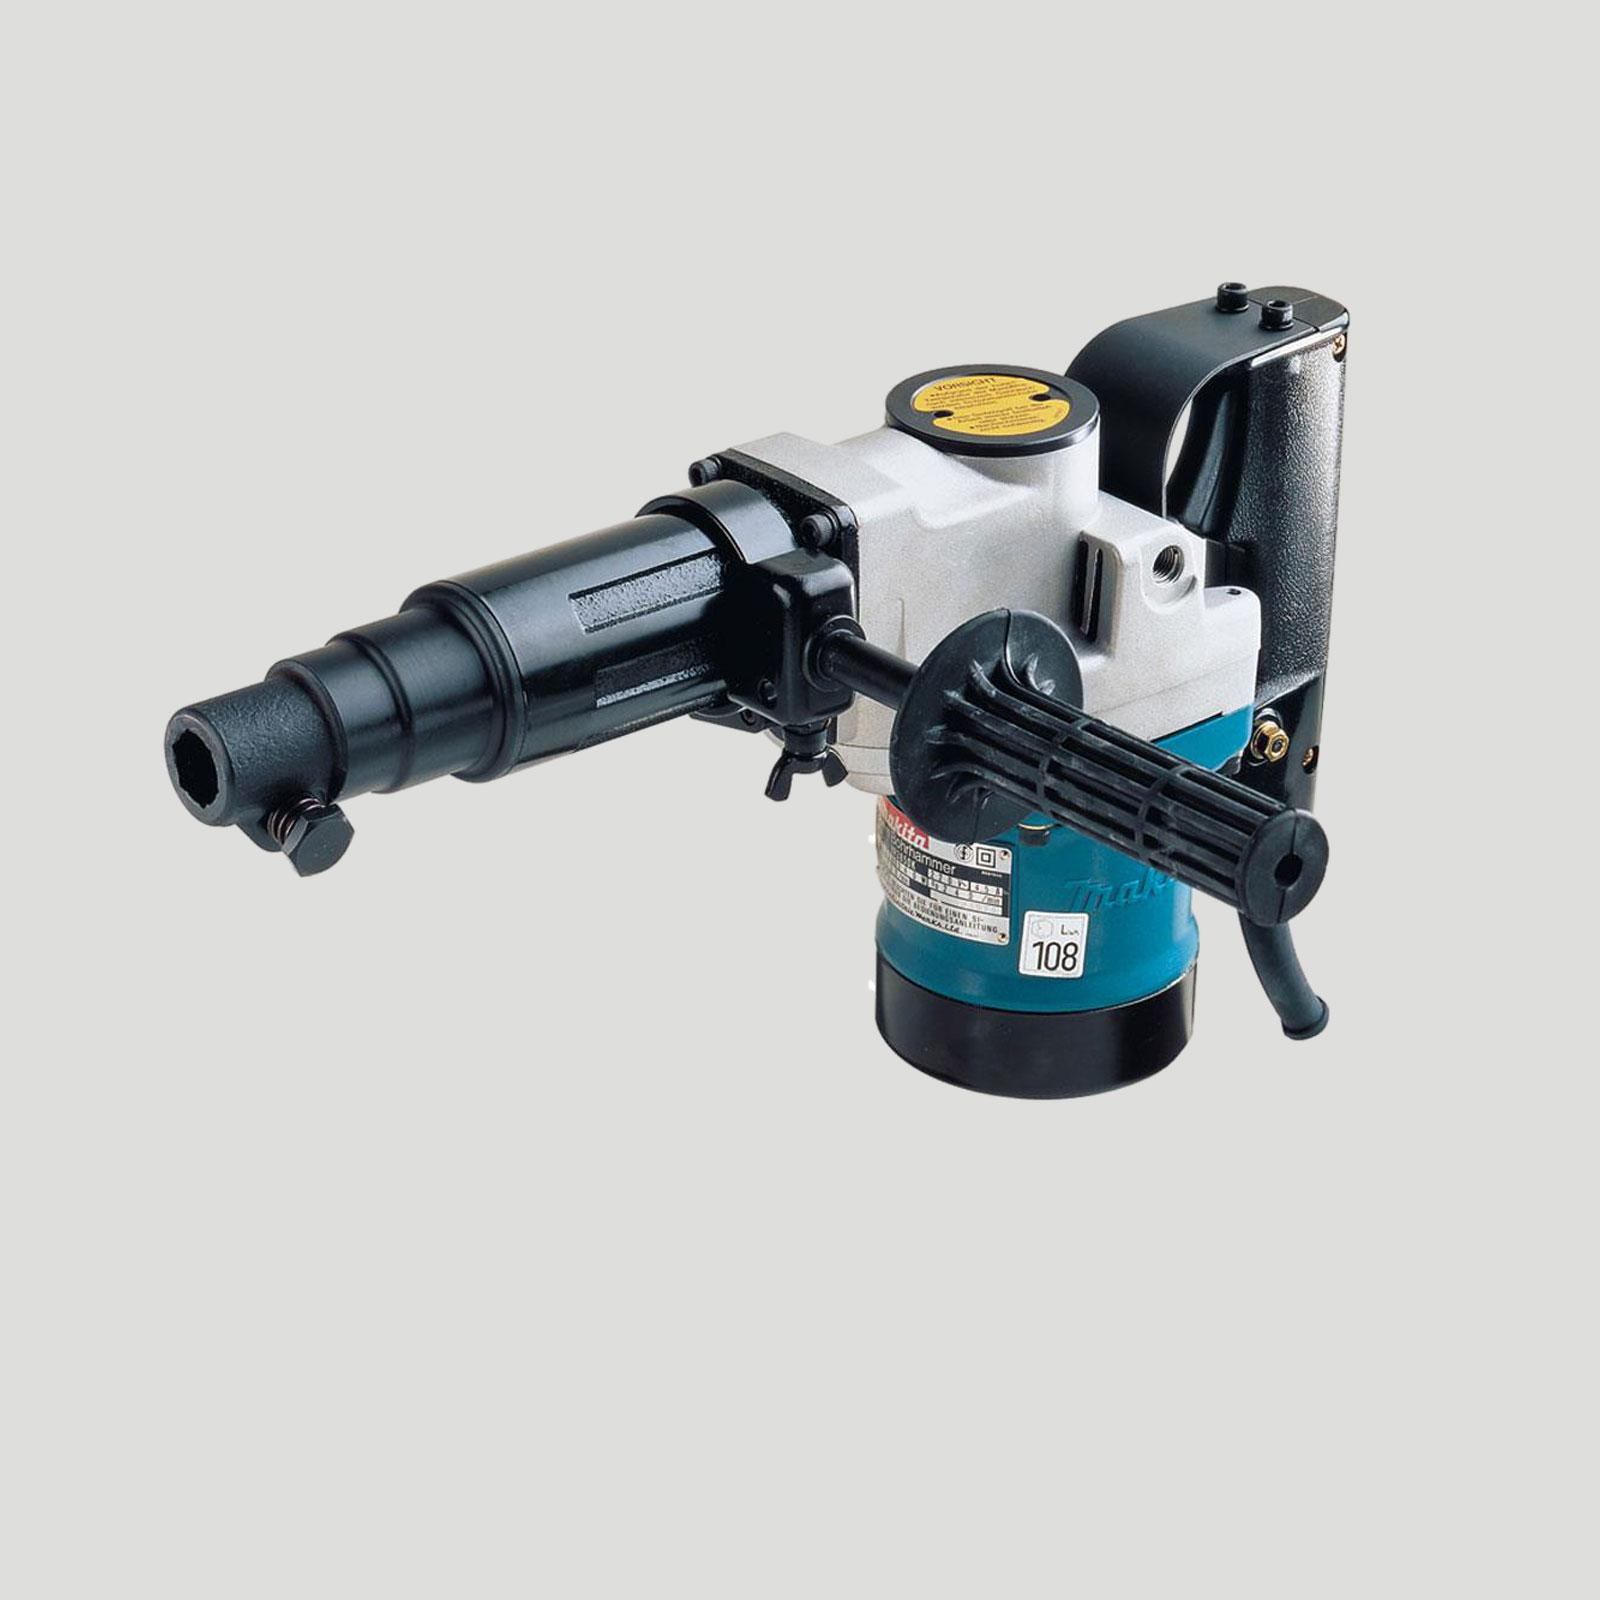 makita bohrhammer 19mm sechskant 940w 7 5kg 6 6 joule schlagst. Black Bedroom Furniture Sets. Home Design Ideas